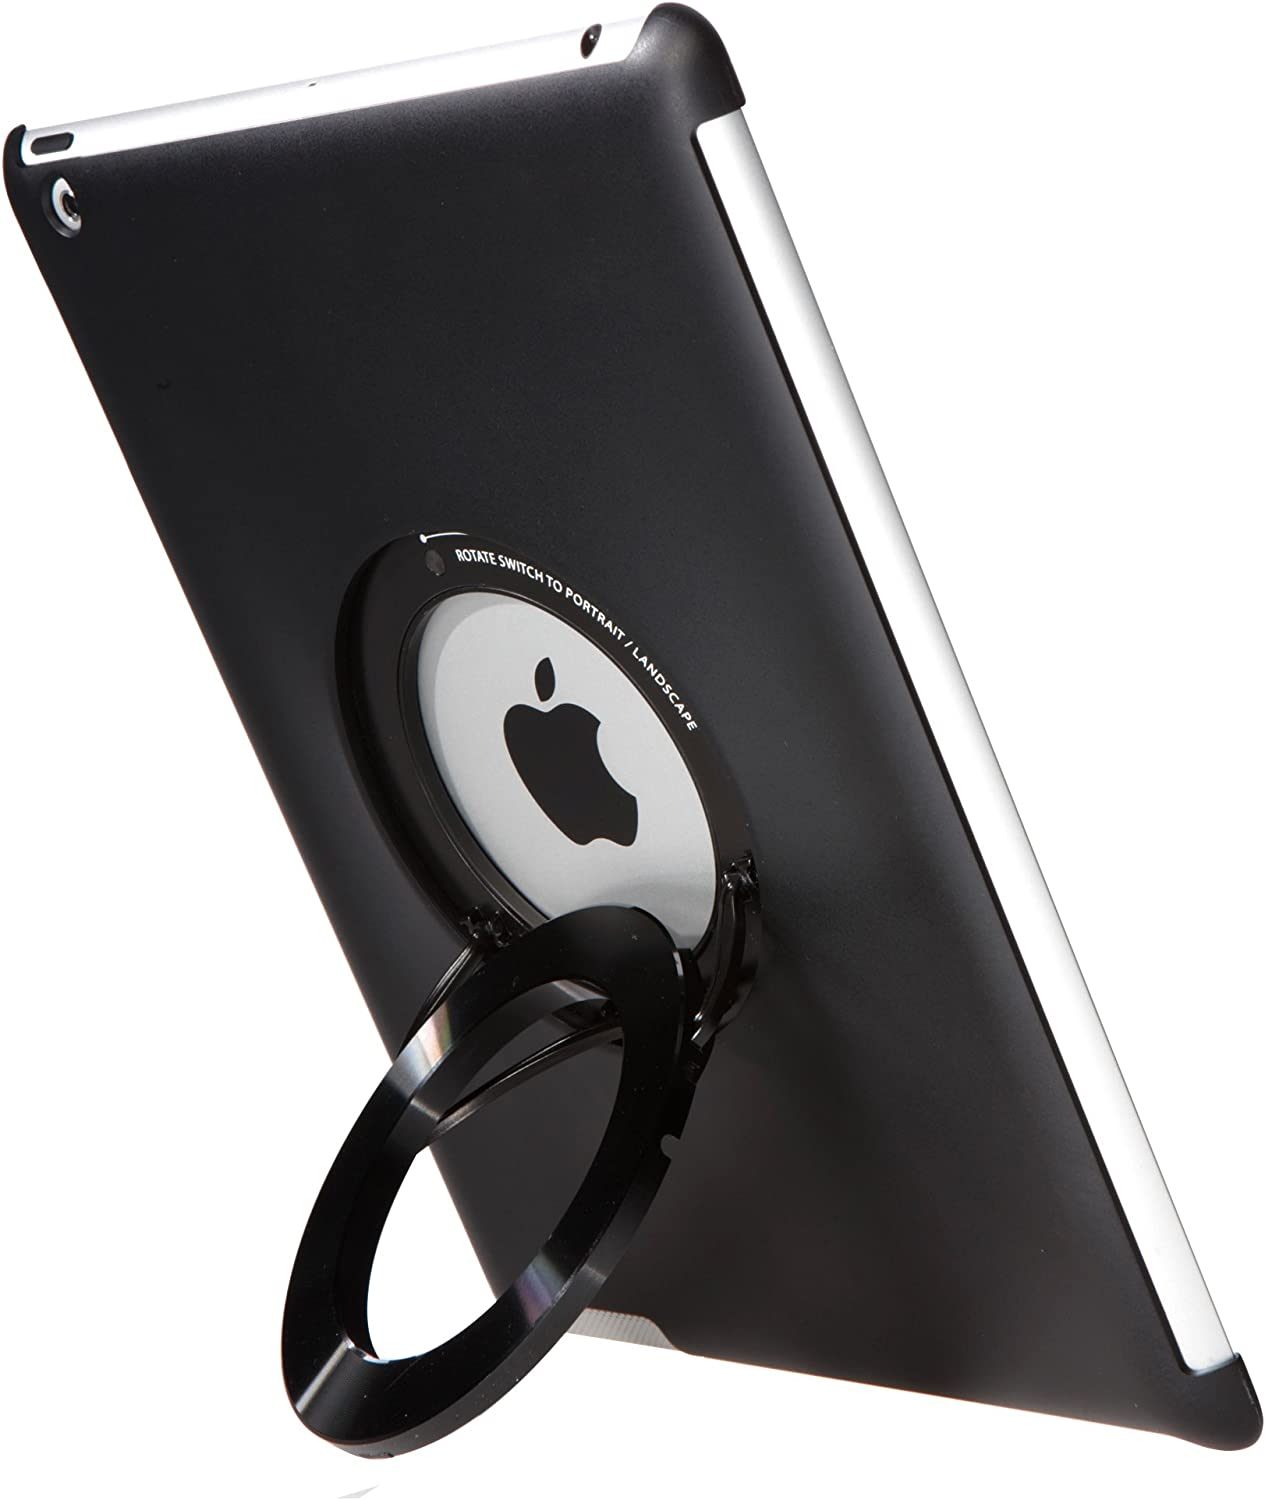 Rolling Ave. i-Circle Multistand/Grip for iPad 2, iPad 3, and the new 4th generation iPad (with retina display)